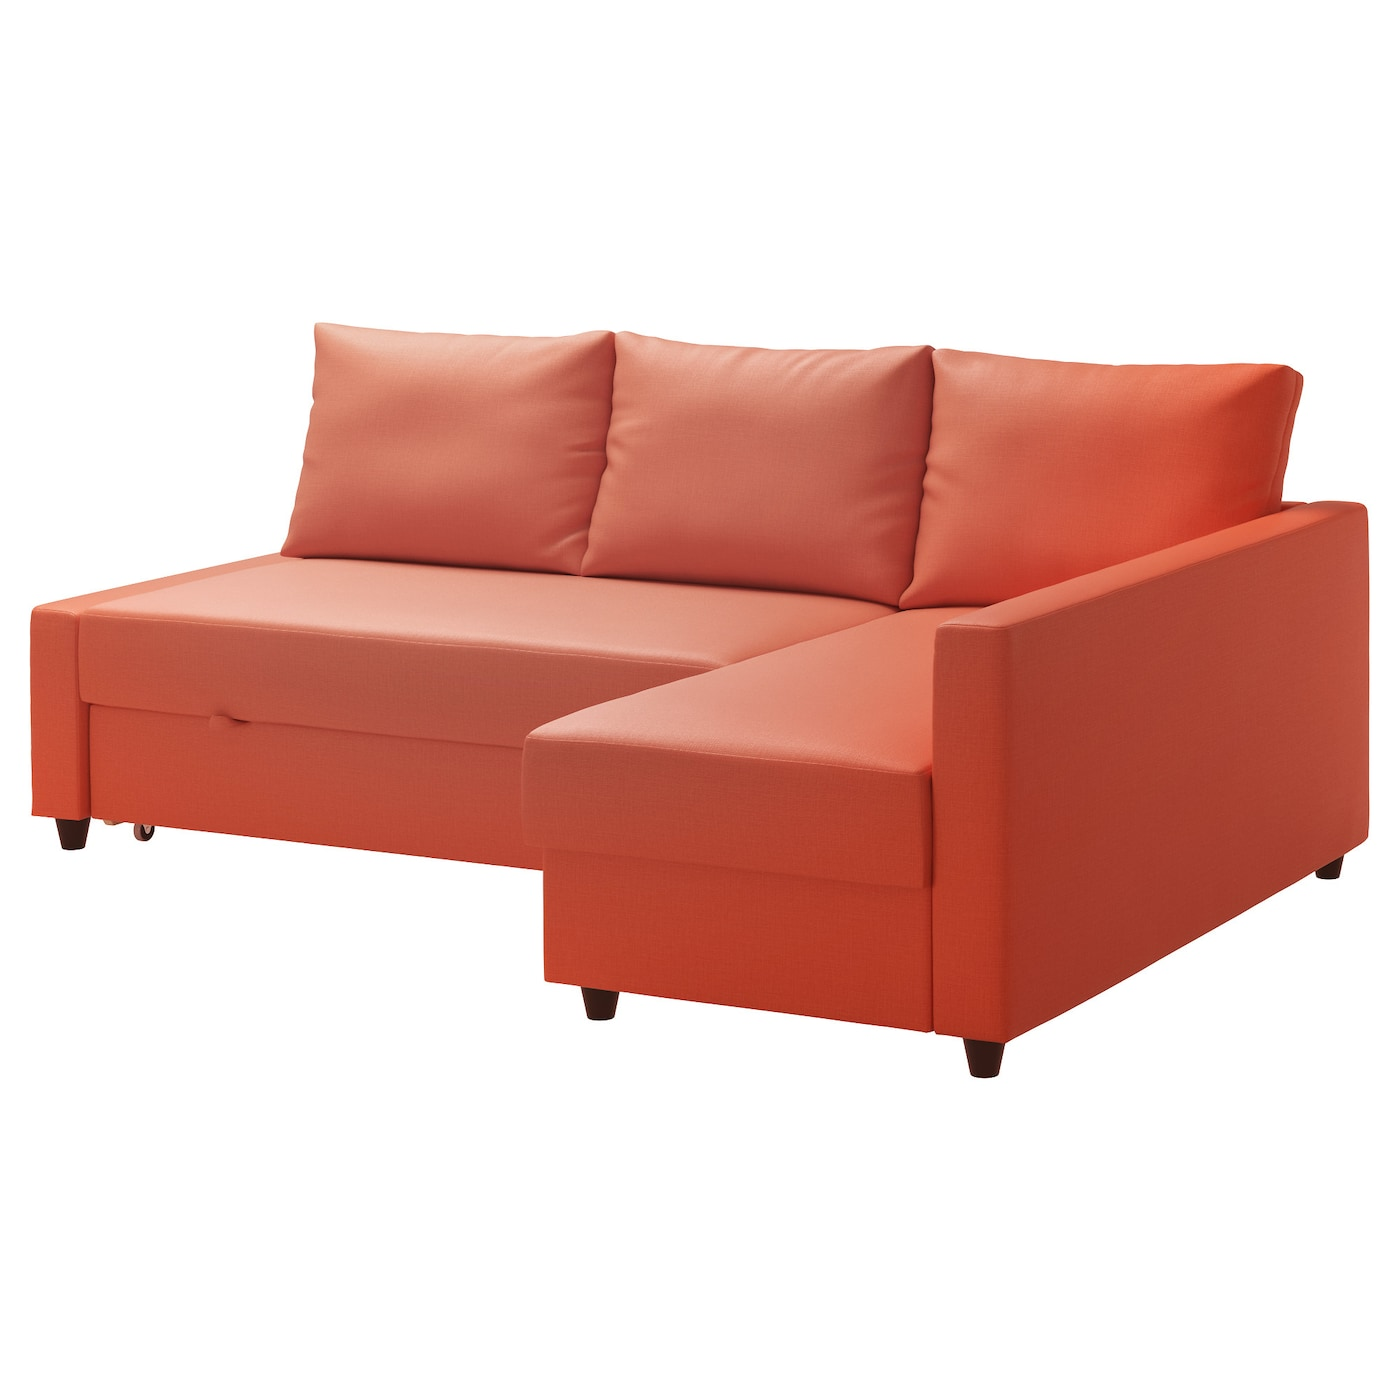 friheten corner sofa bed with storage skiftebo dark orange. Black Bedroom Furniture Sets. Home Design Ideas